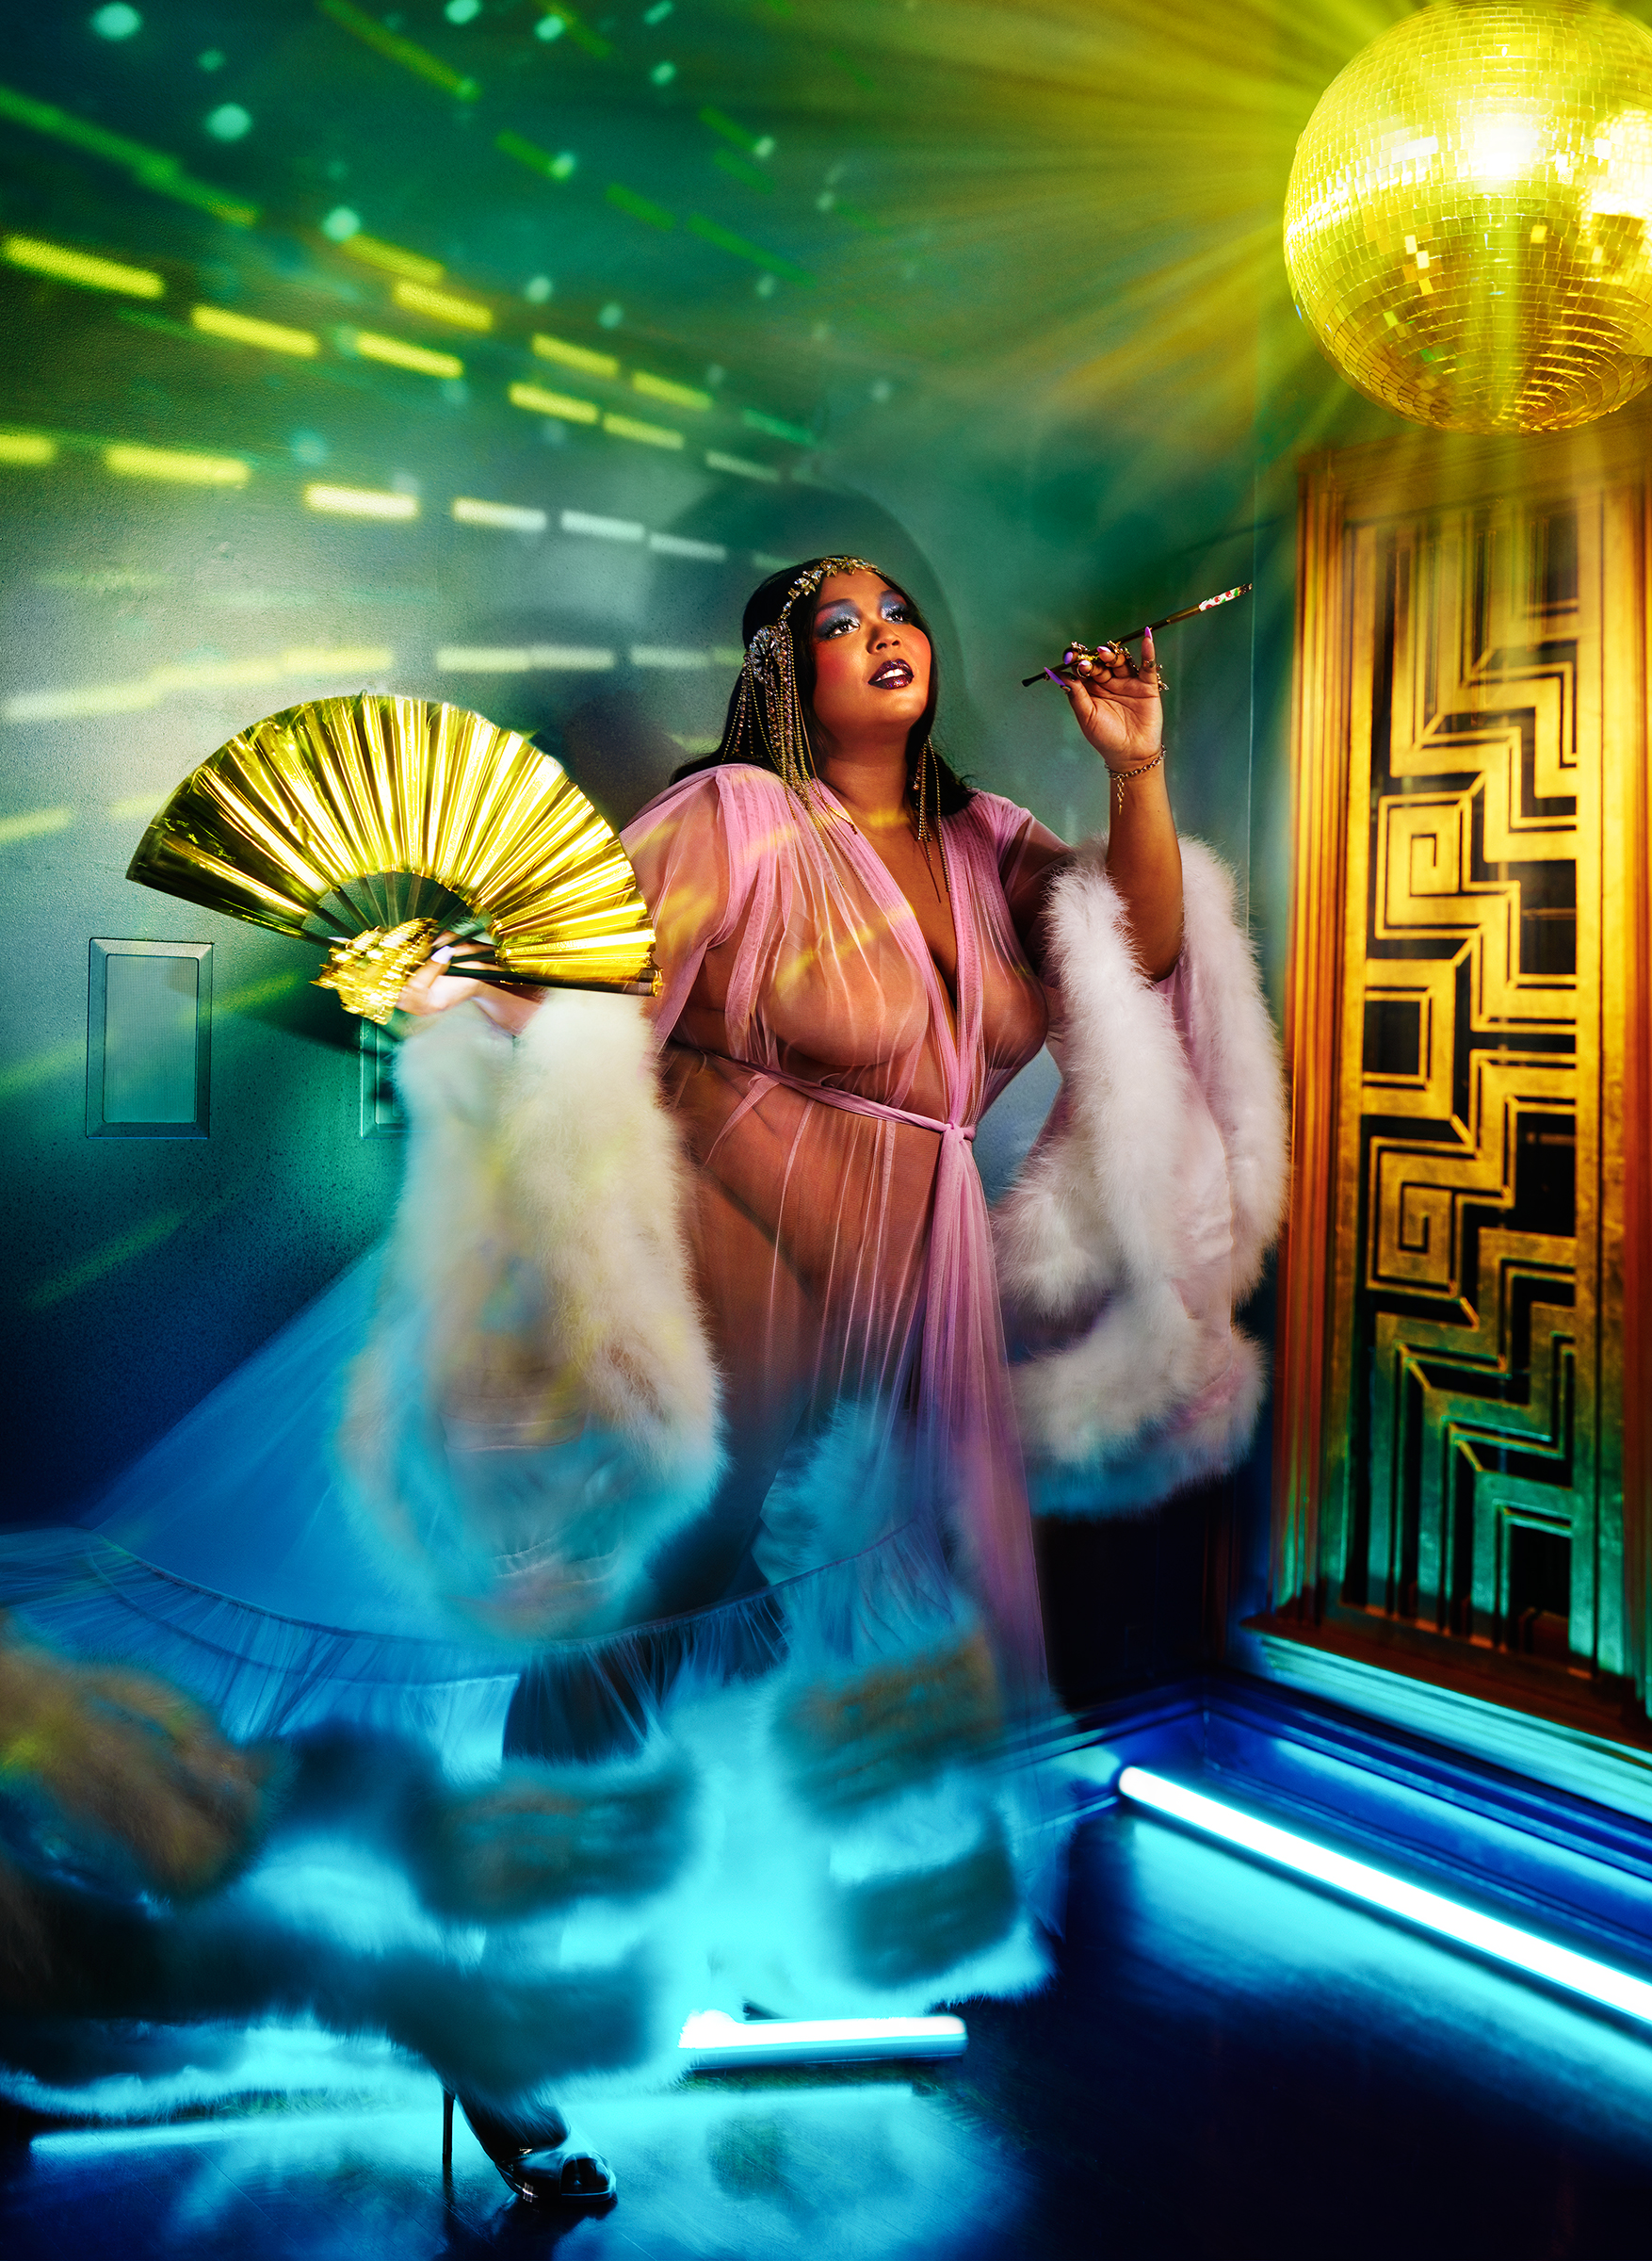 lizzo rolling stone cover story david lachepelle